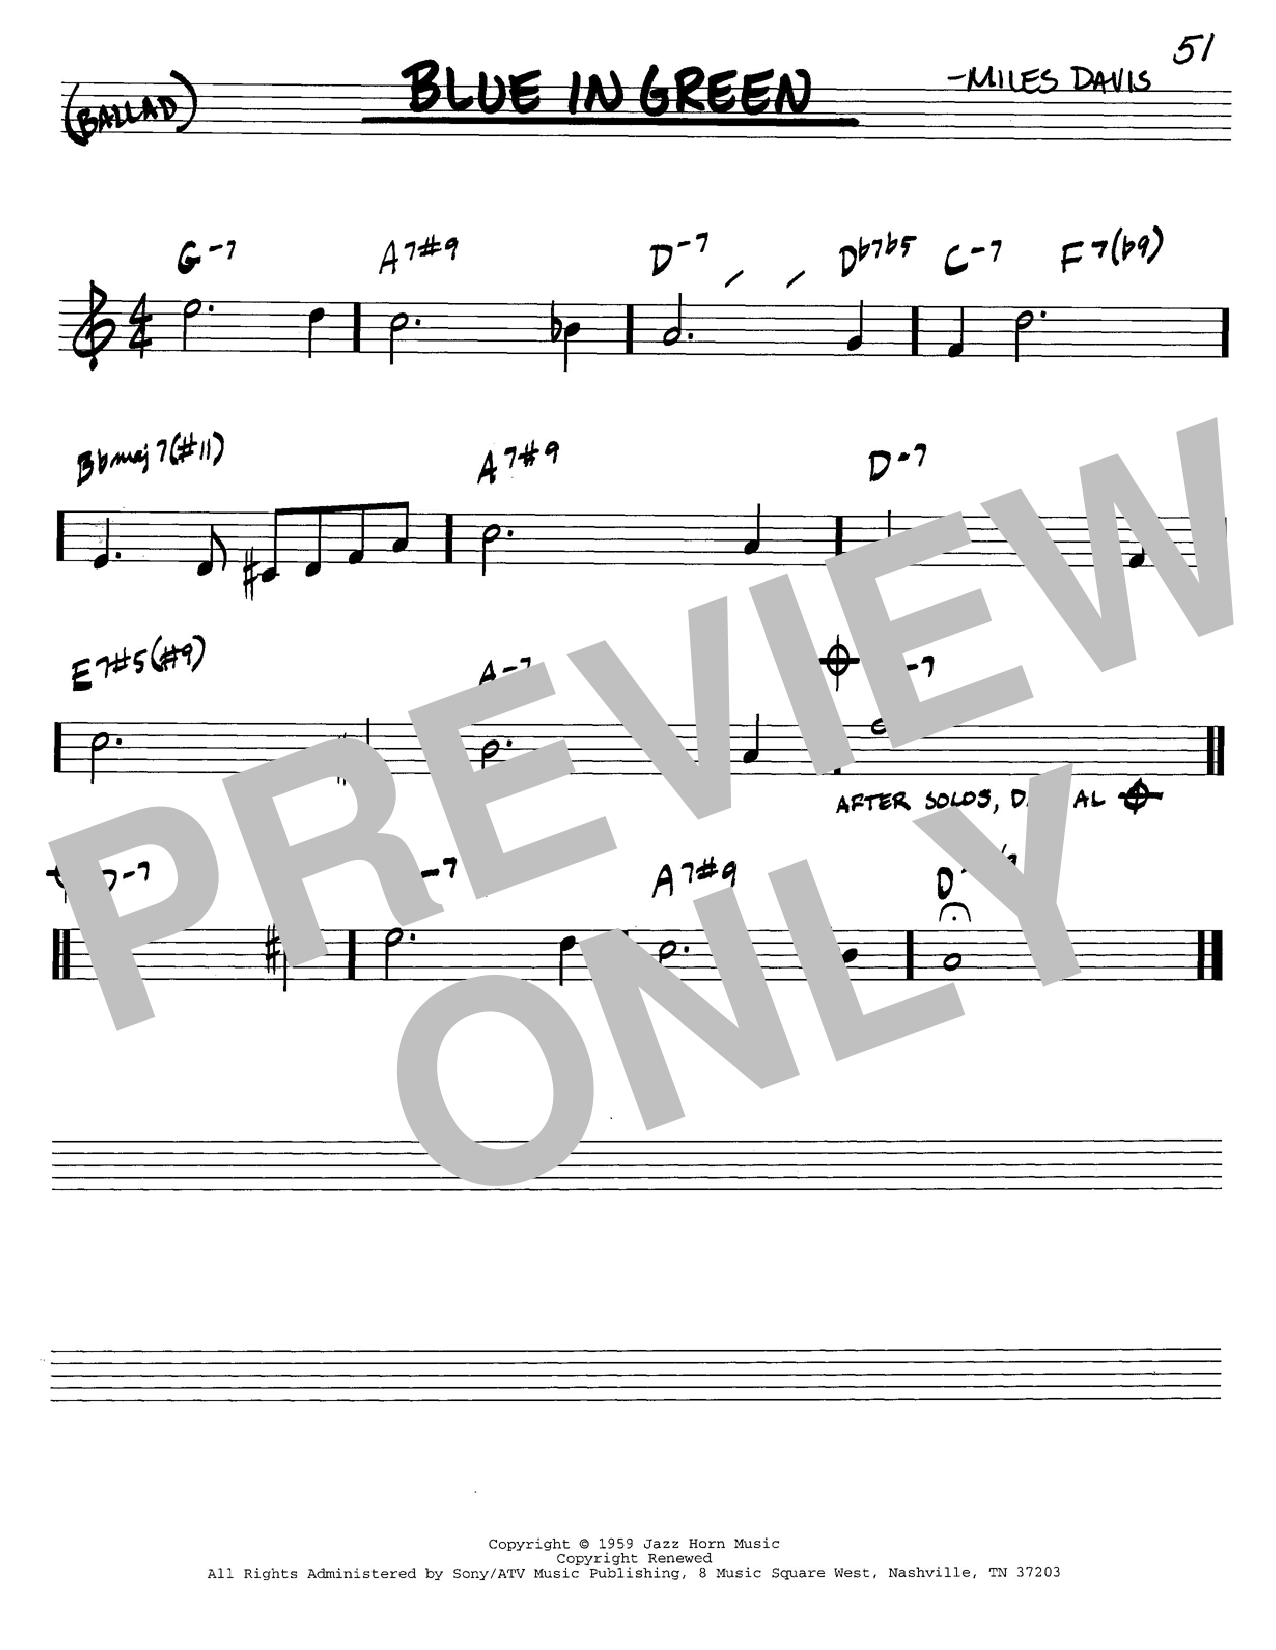 Miles Davis Blue In Green sheet music notes and chords. Download Printable PDF.